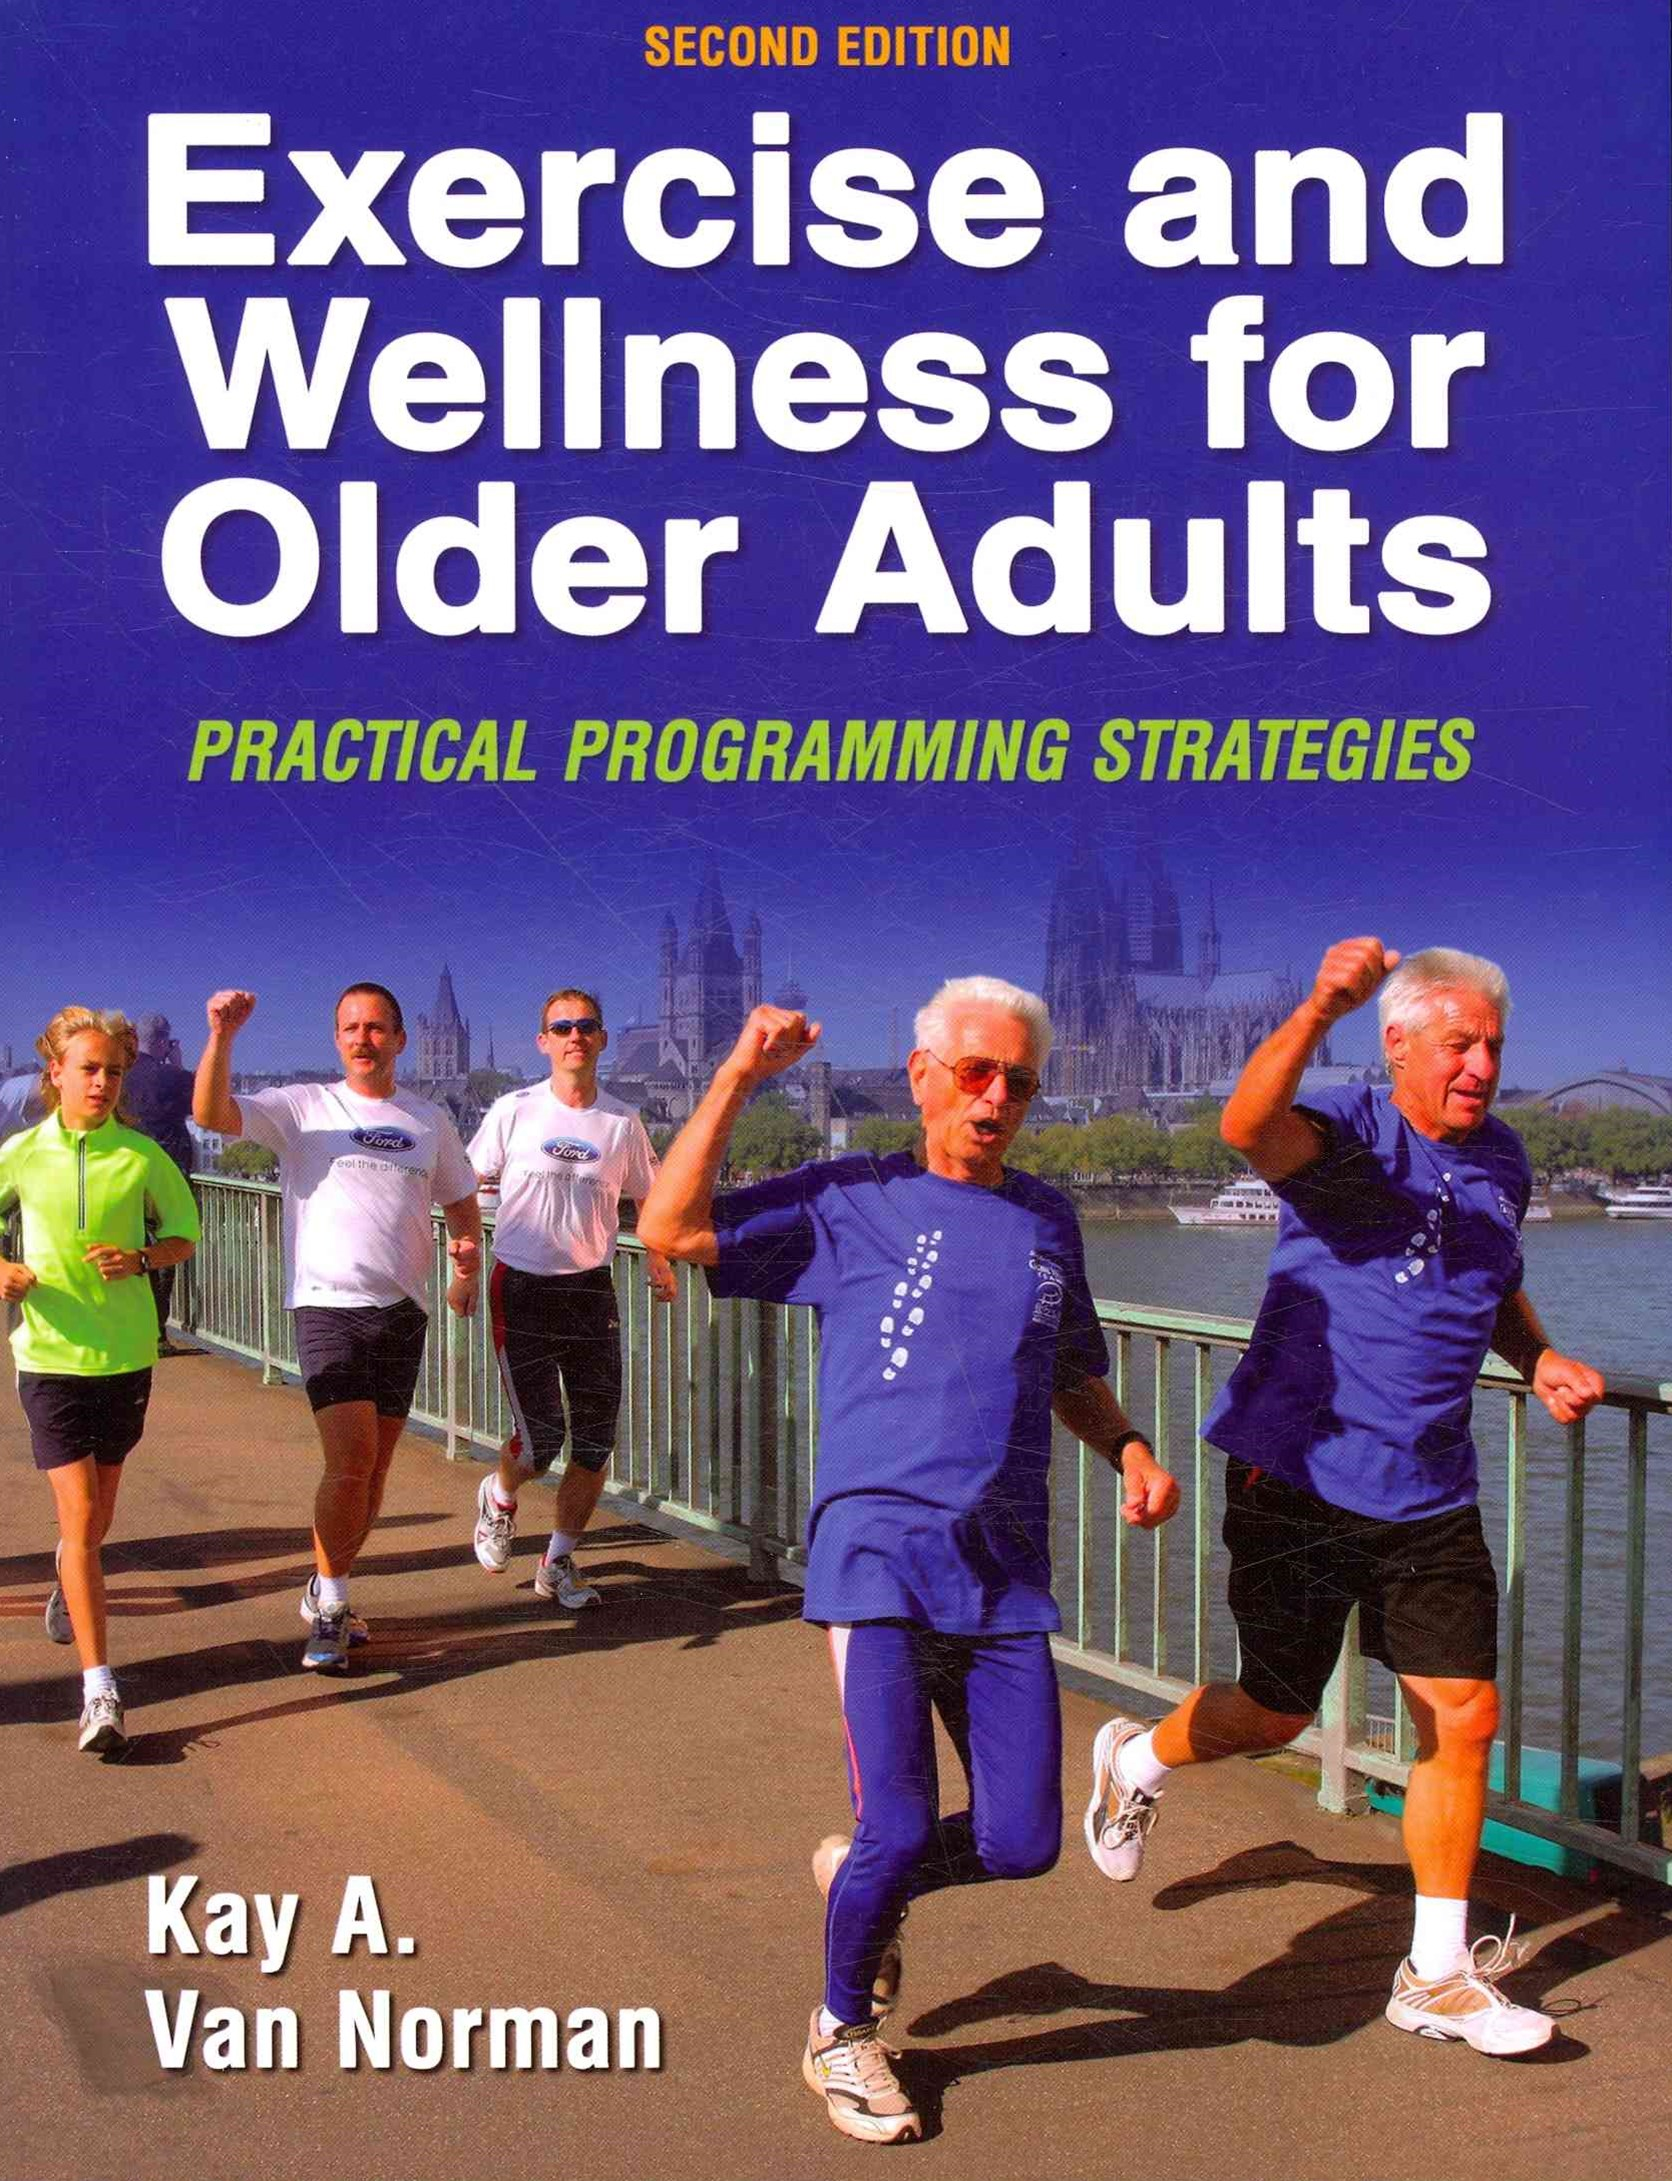 Exercise and Wellness for Older Adults